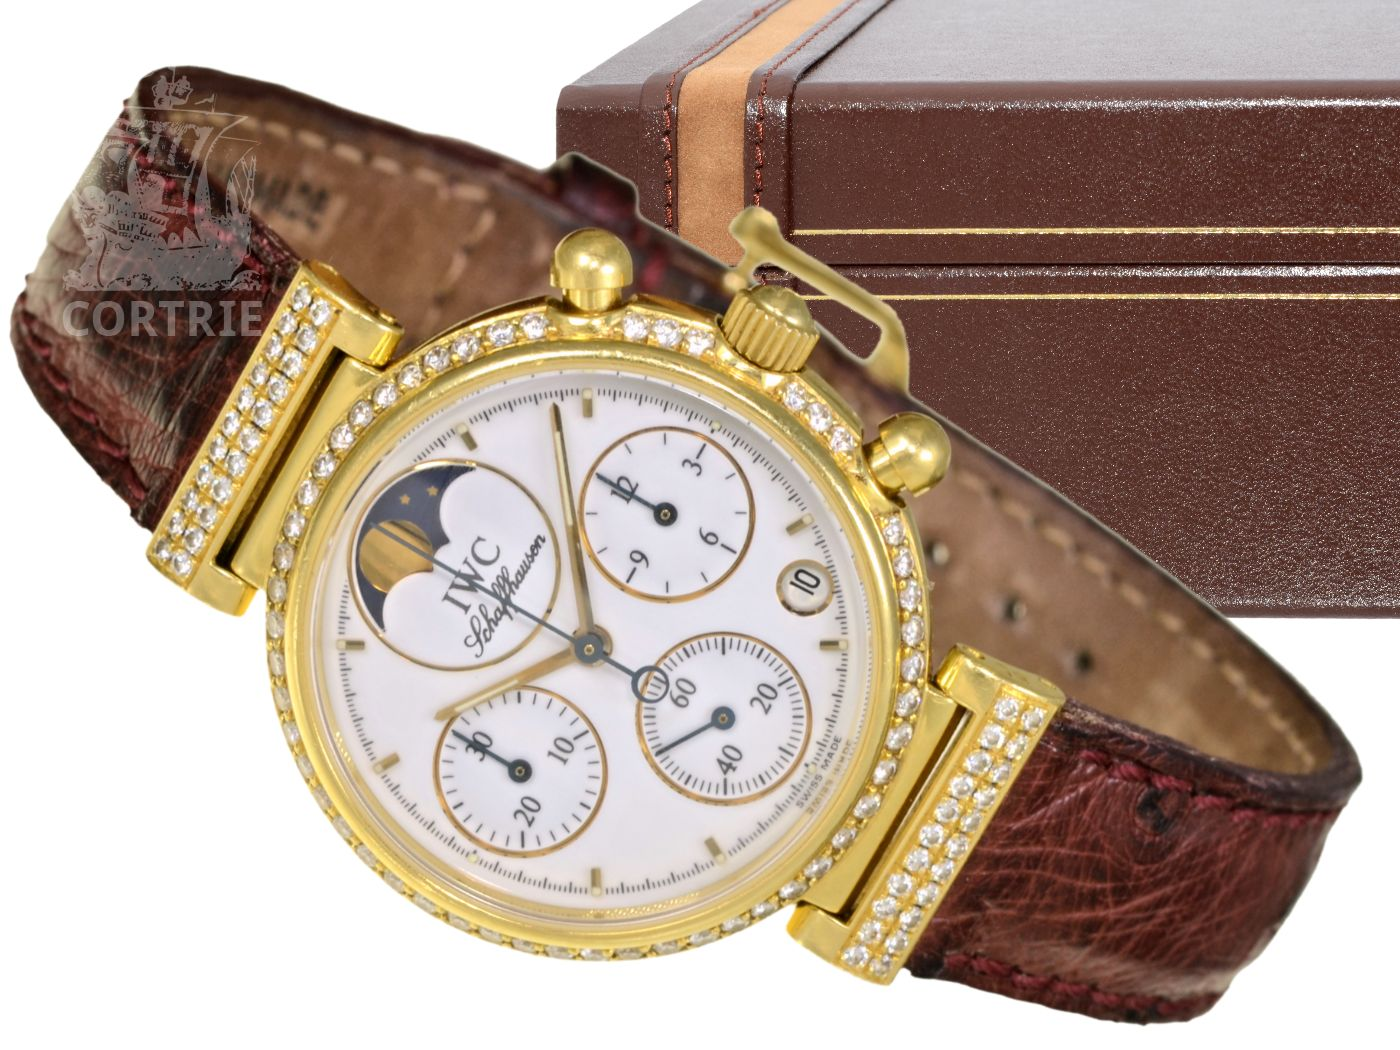 Wristwatch: luxurious and very rare ladies watch with diamonds, IWC Da Vinci chronograph with moon, original box and original certificates, original price 15,250 €-